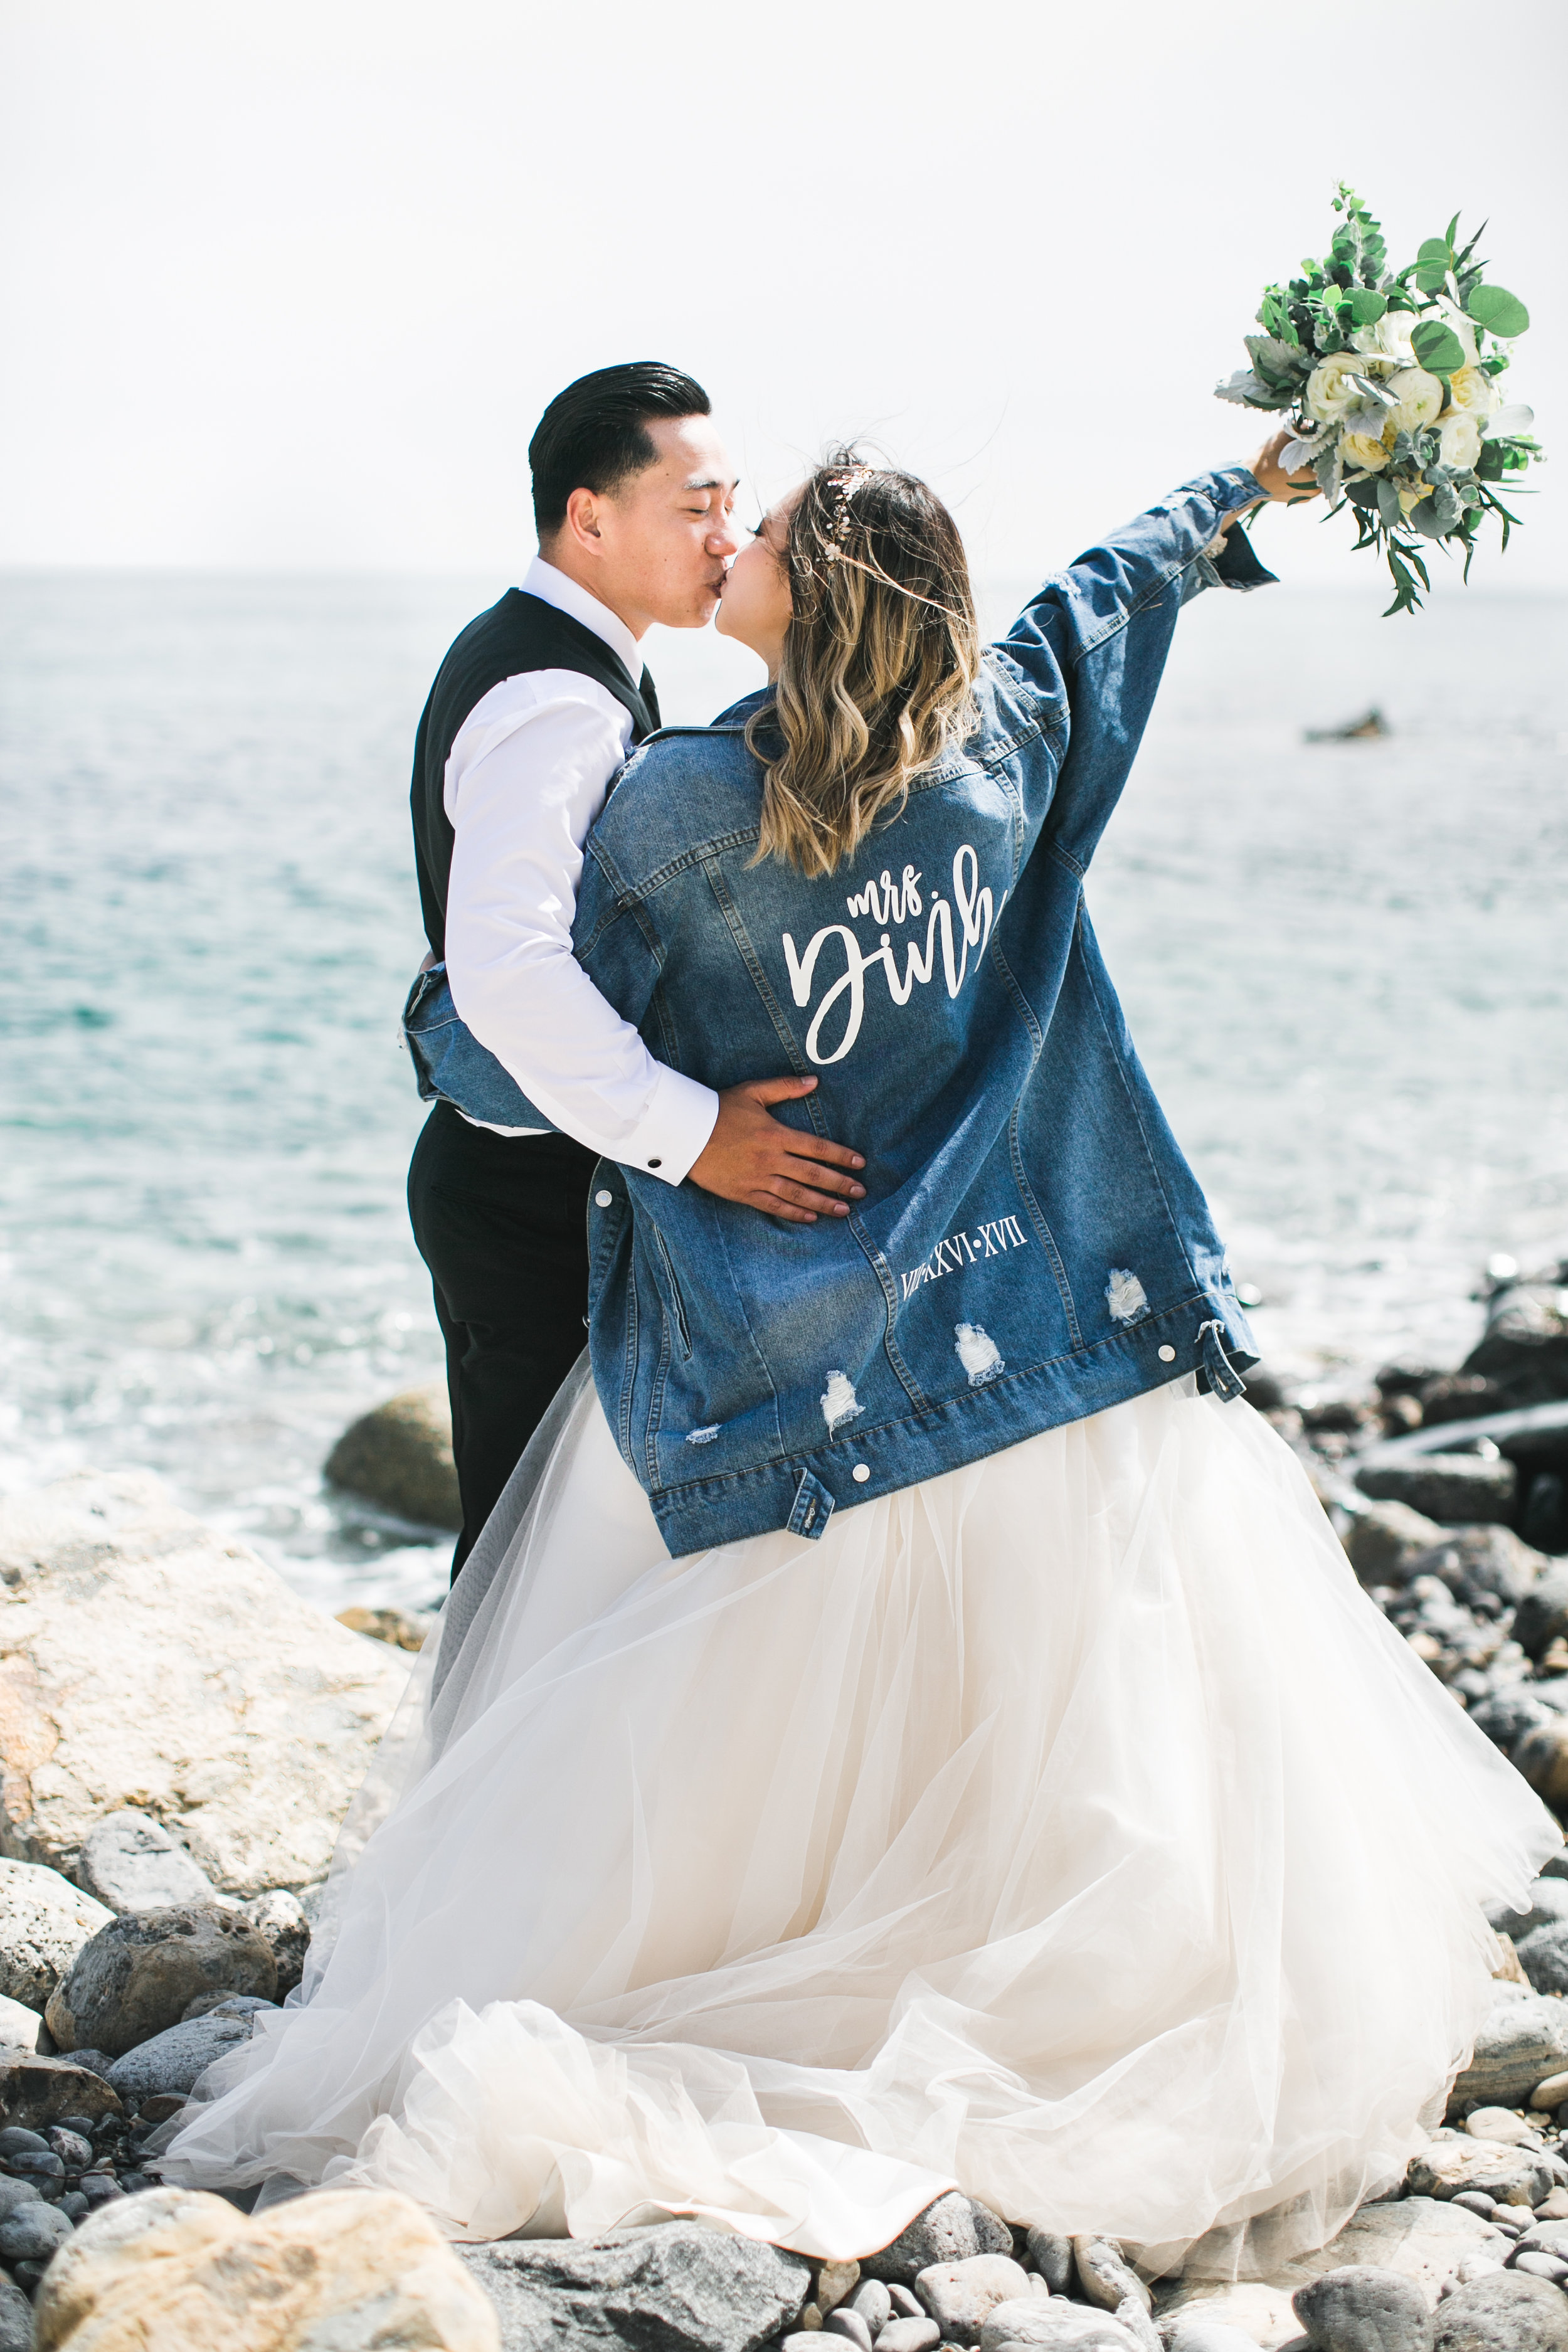 Obsessed with Tara's idea of the 'Mrs.' denim jacket!